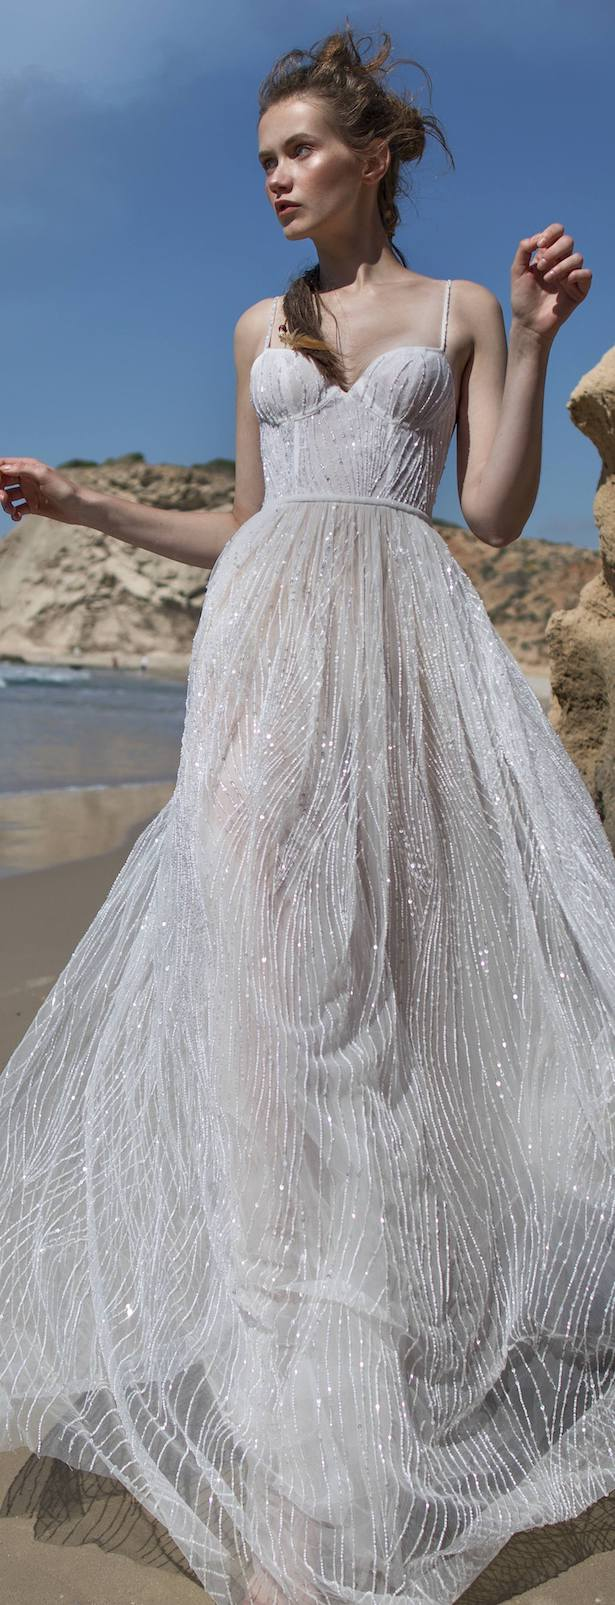 wedding dresses by limor rosen bridal couture 2018 free spirit